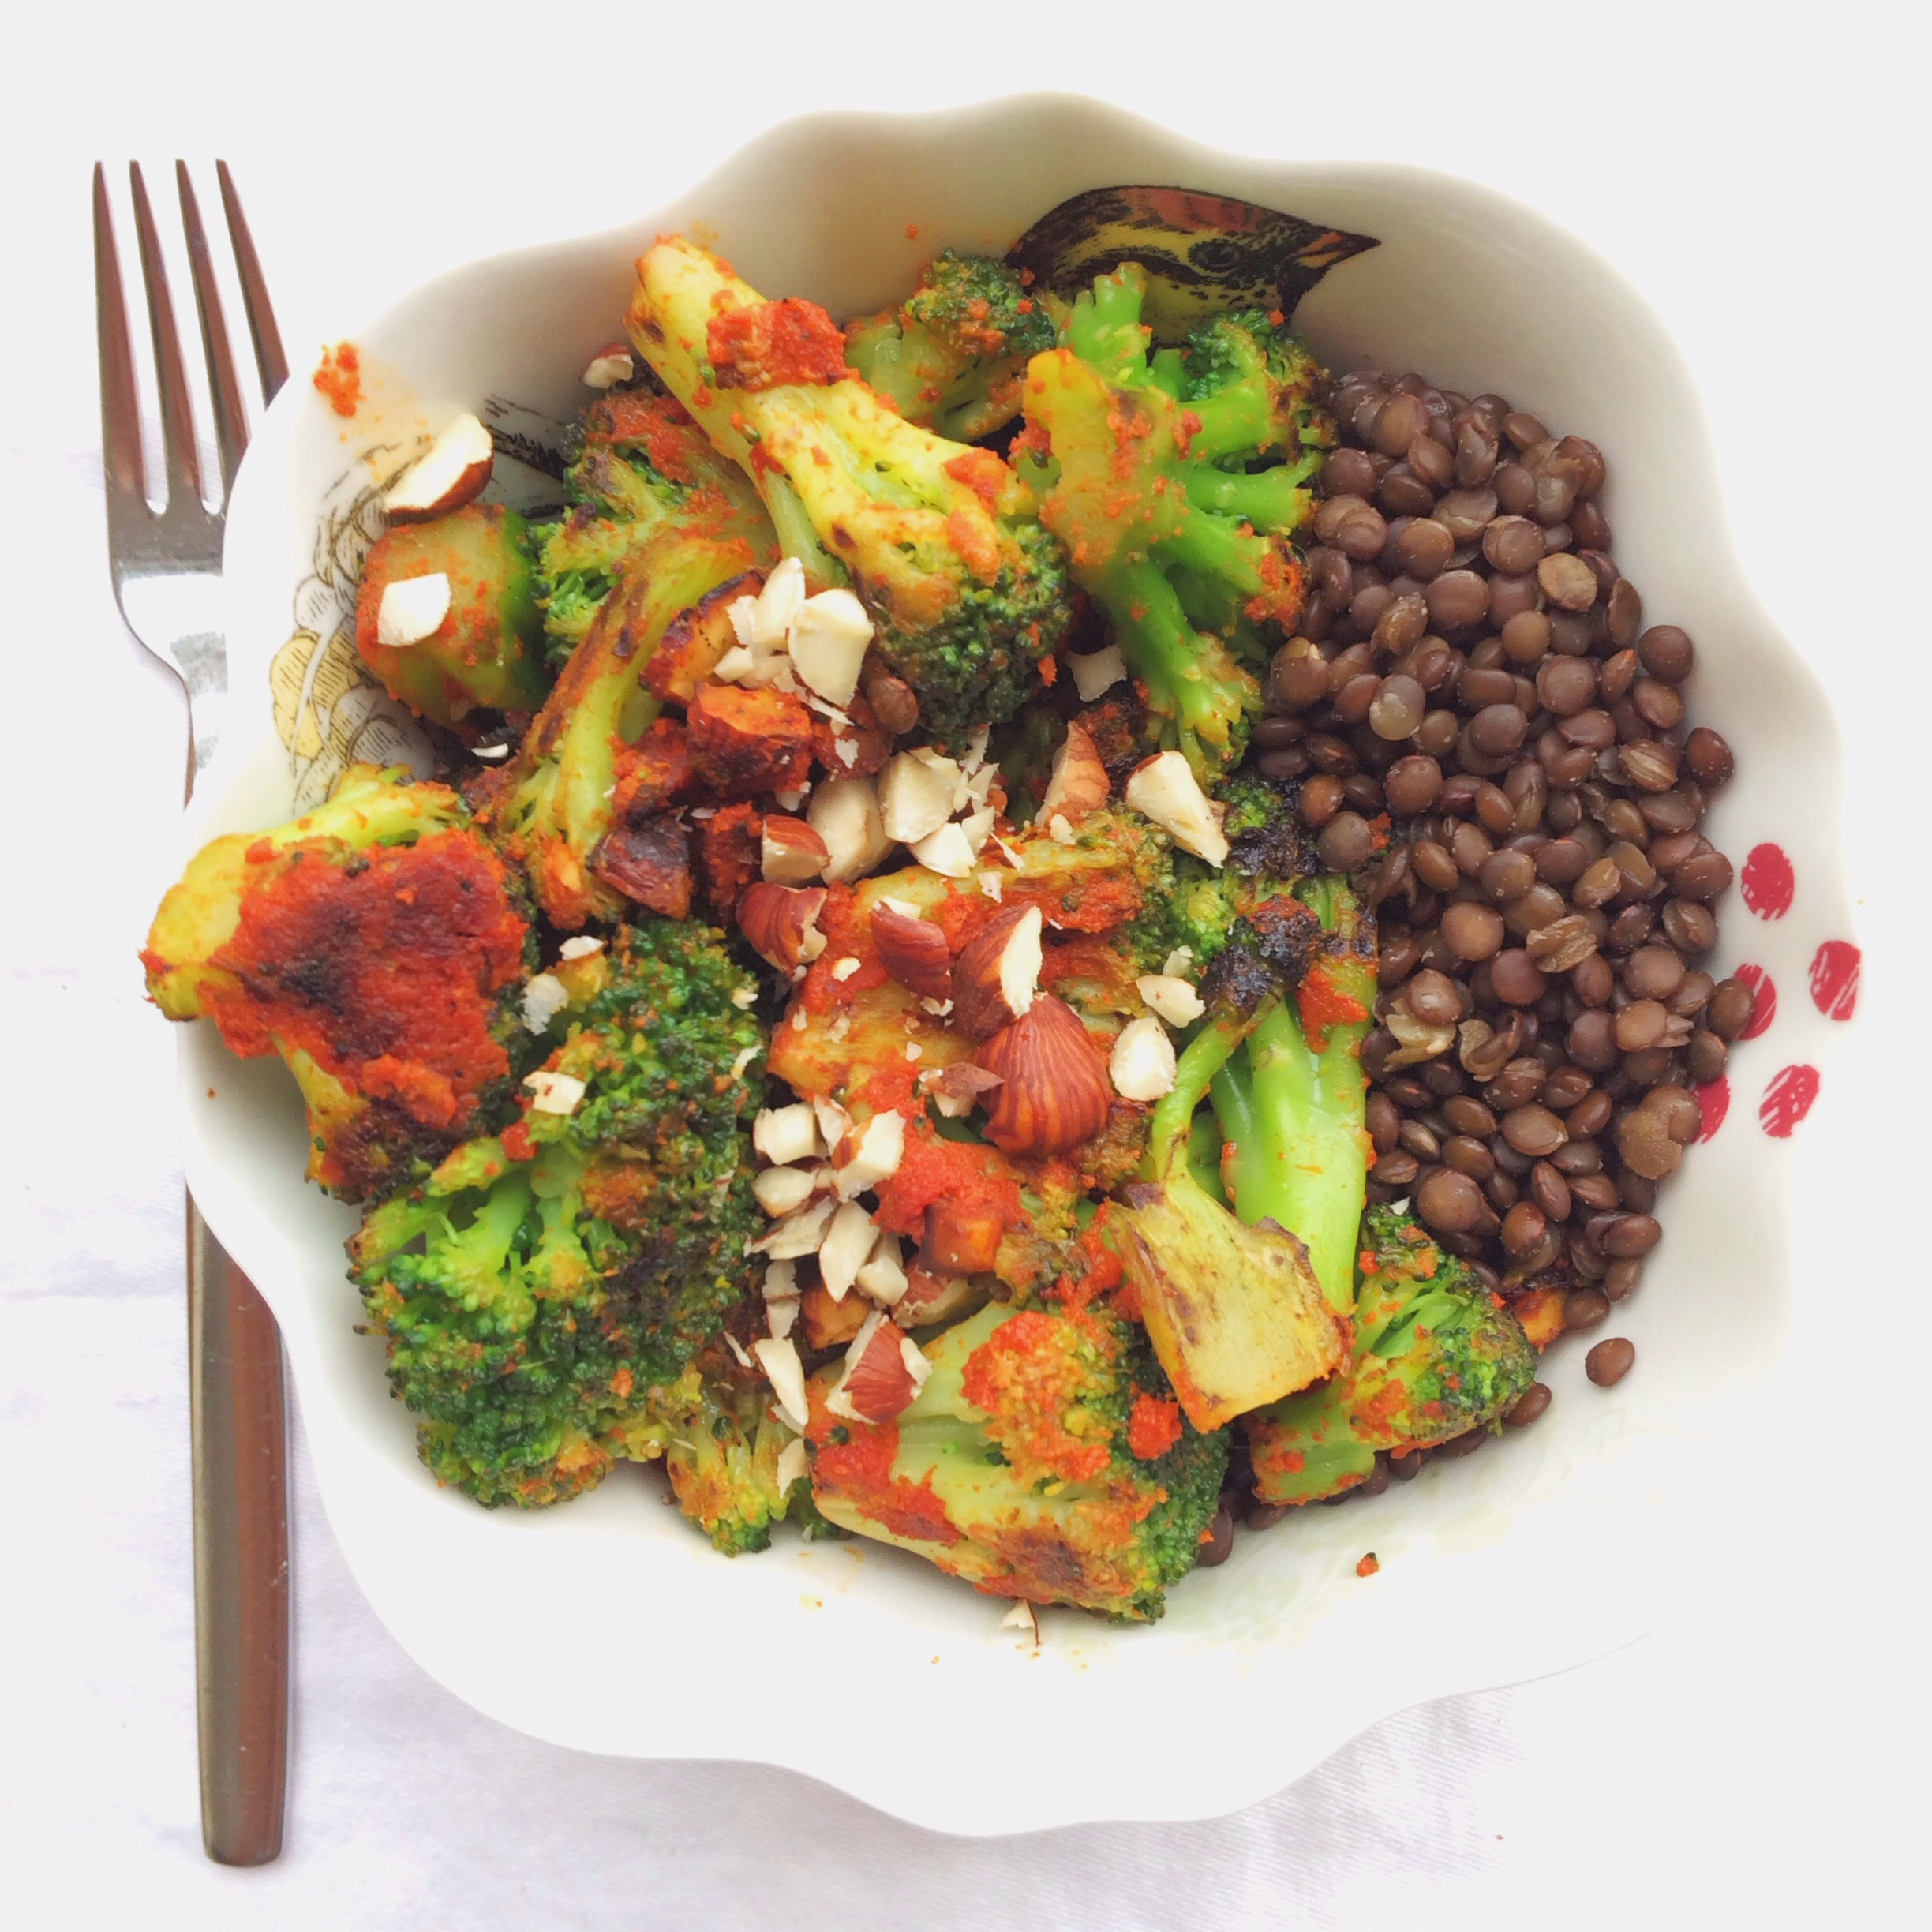 Vegan Red Curried Broccoli with Hazelnuts